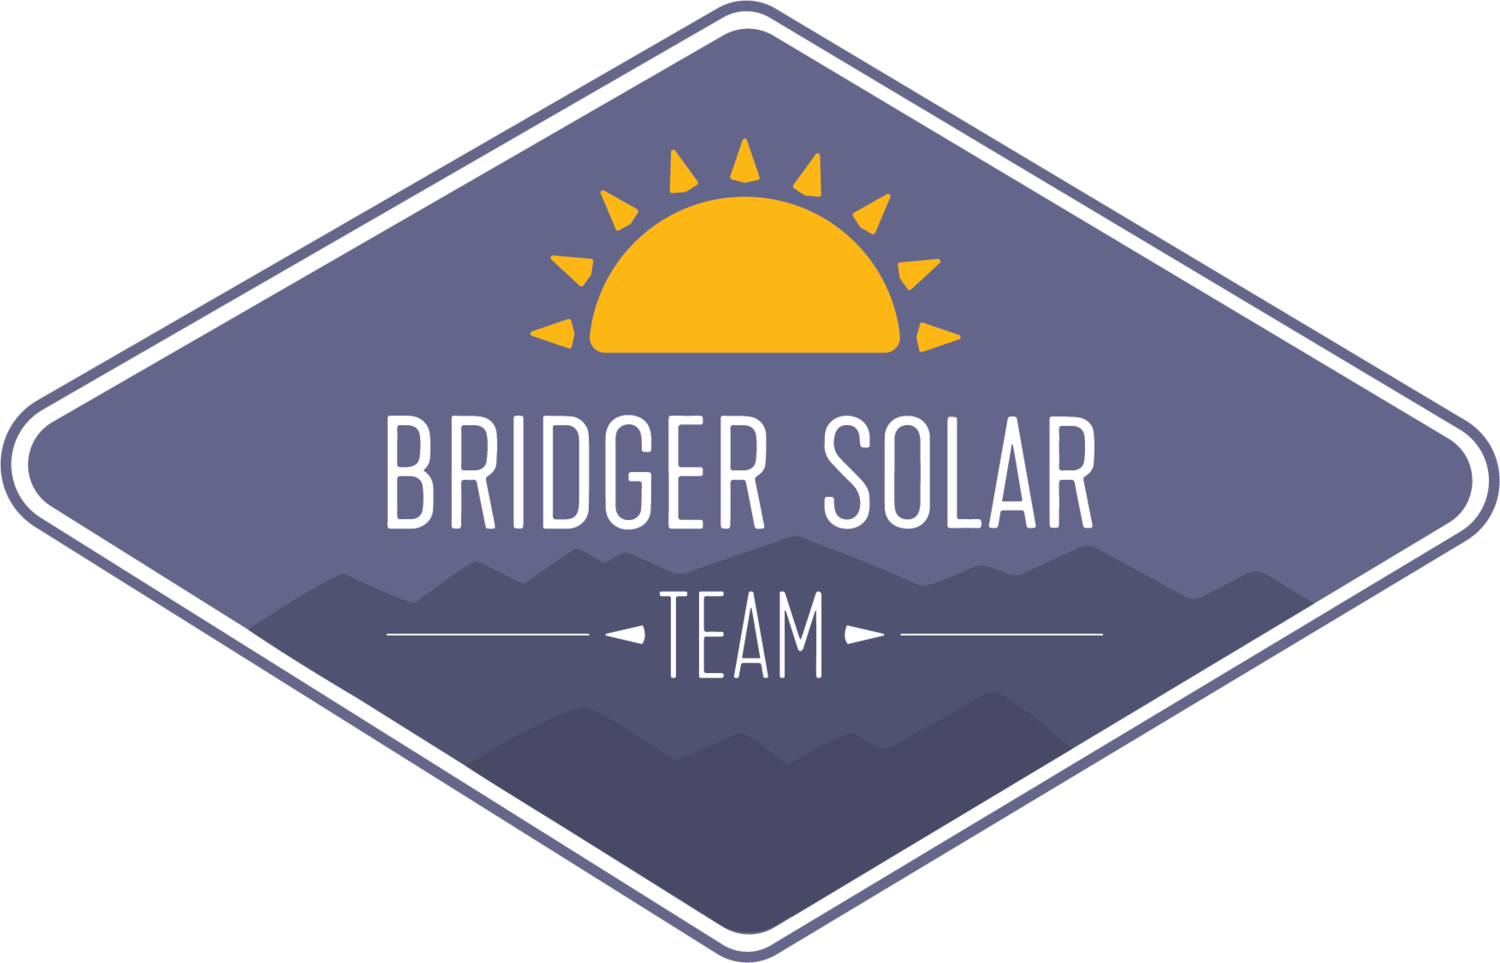 Bridger Solar Team